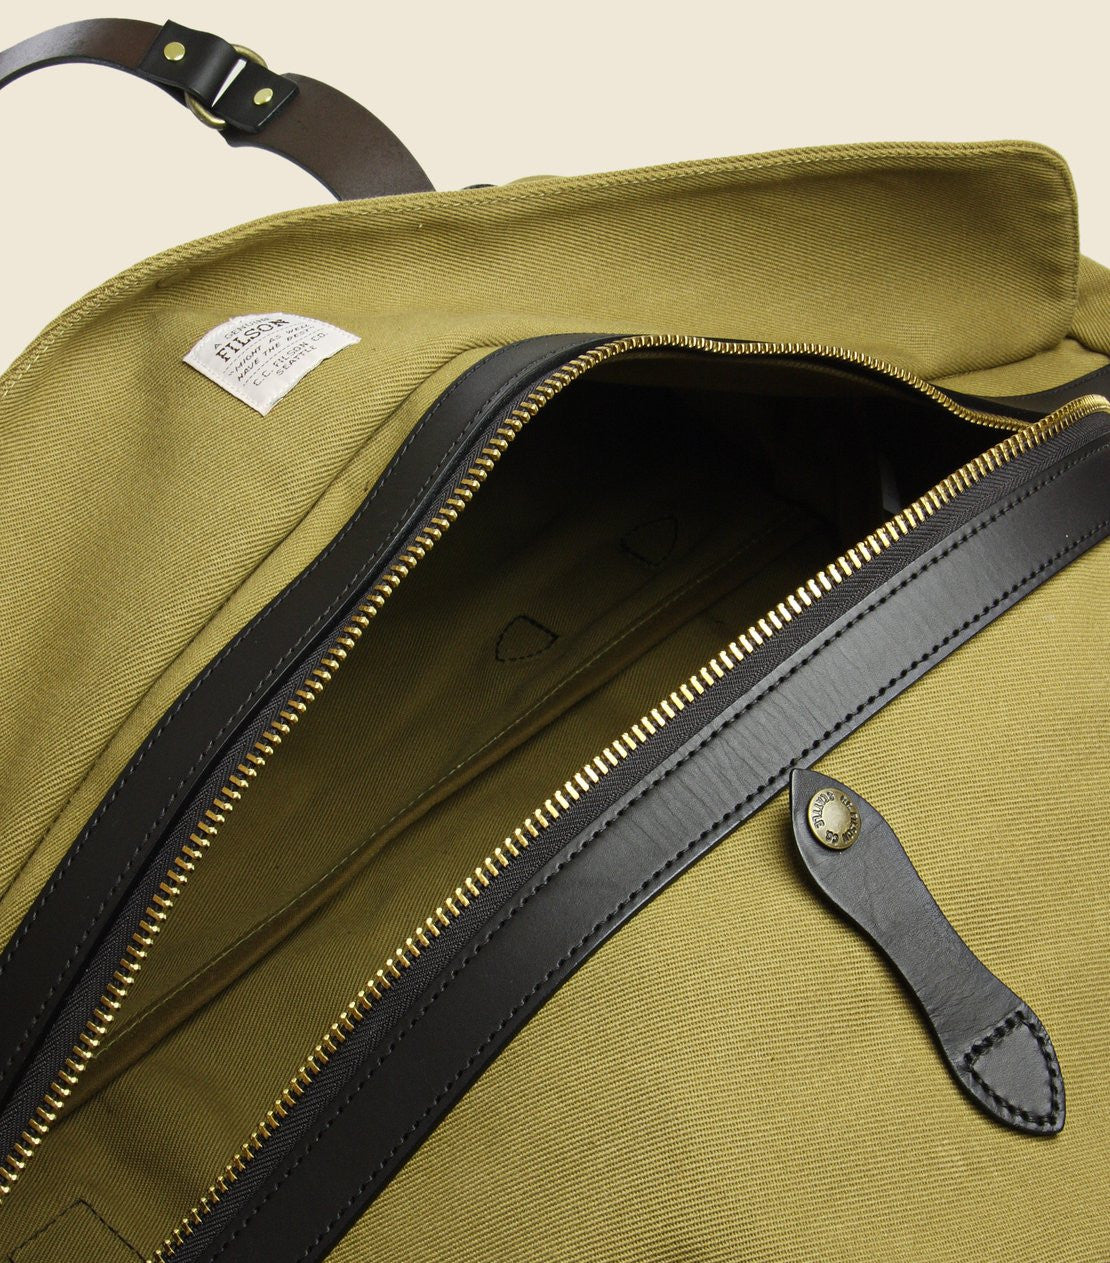 Large Duffle Bag - Tan - Filson - STAG Provisions - Accessories - Bags / Luggage